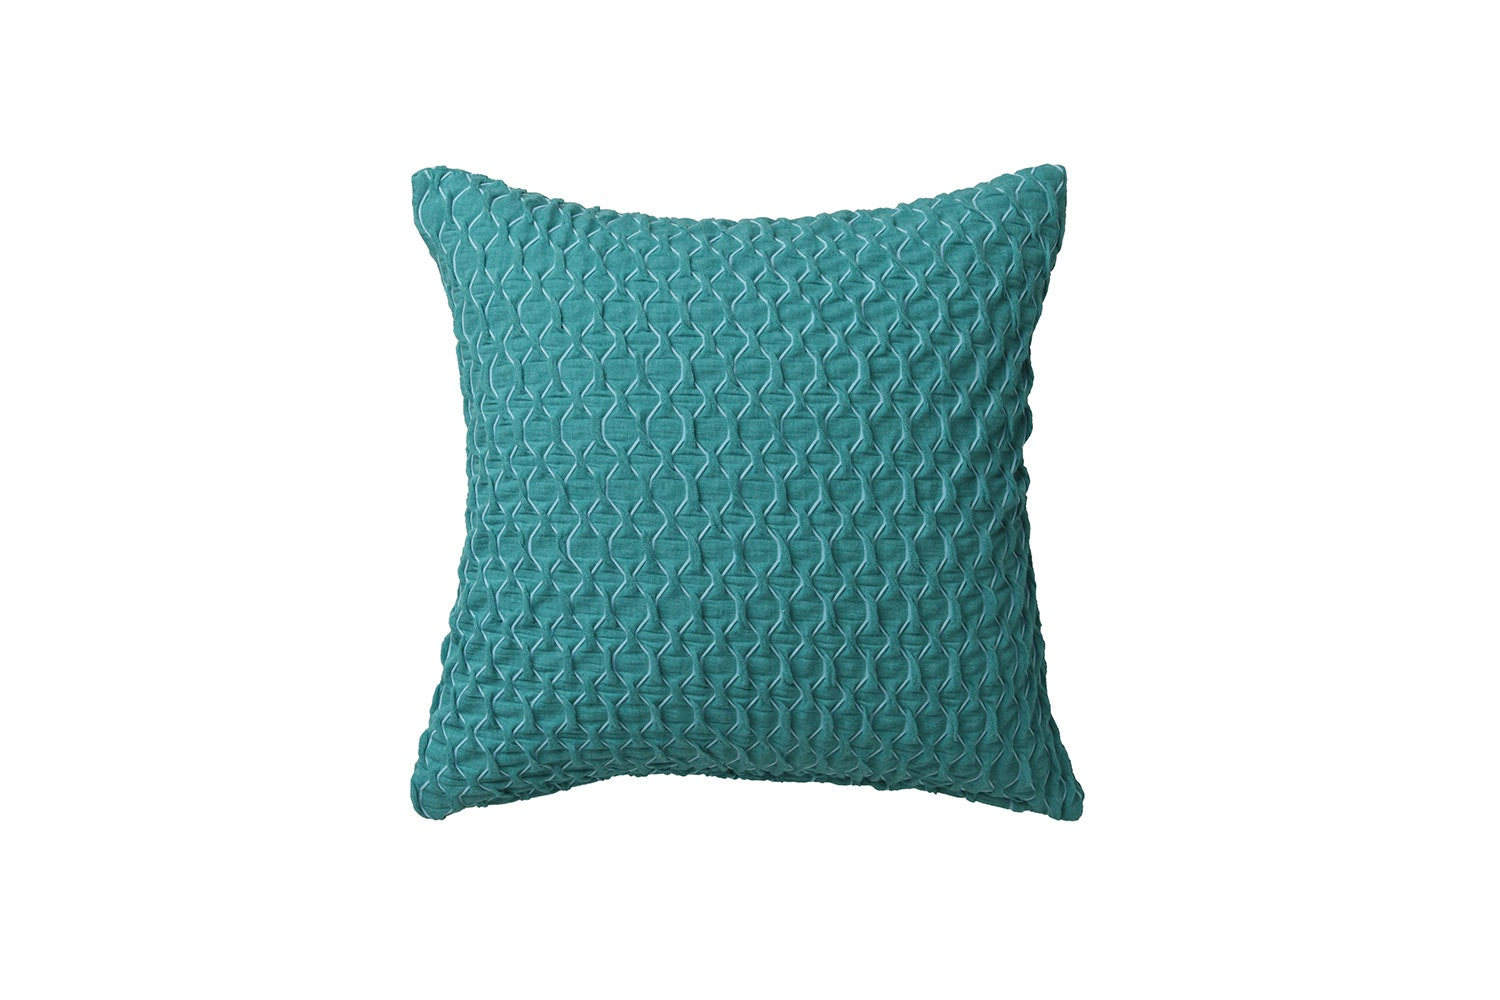 Balmain Accessory Range by Ultima - Square Cushion Turquoise